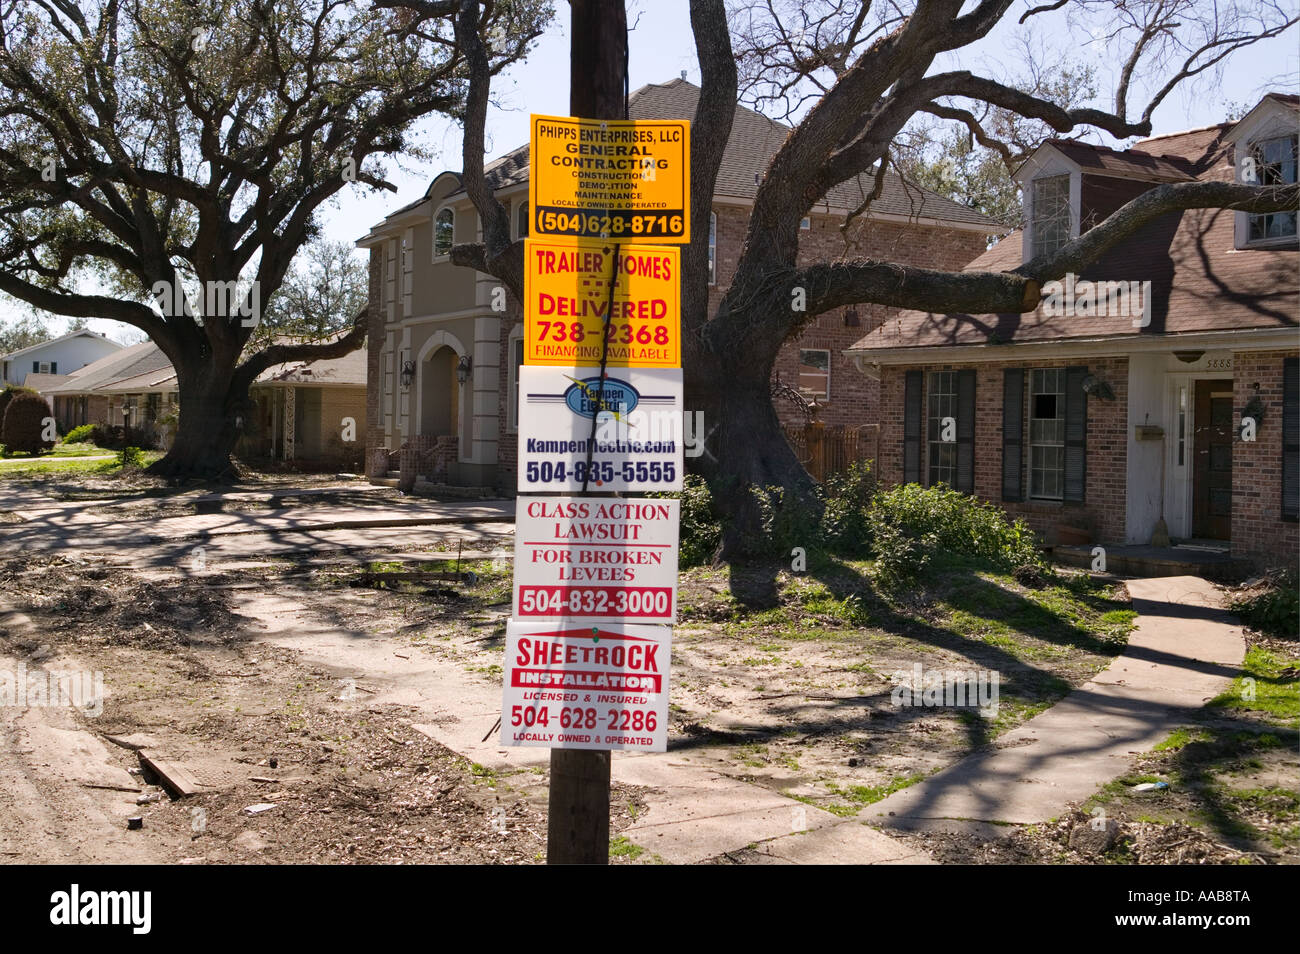 Advertising placards promoting services in the Lakewood neighborhood of New Orleans Louisana showing Hurricane Katrina - Stock Image